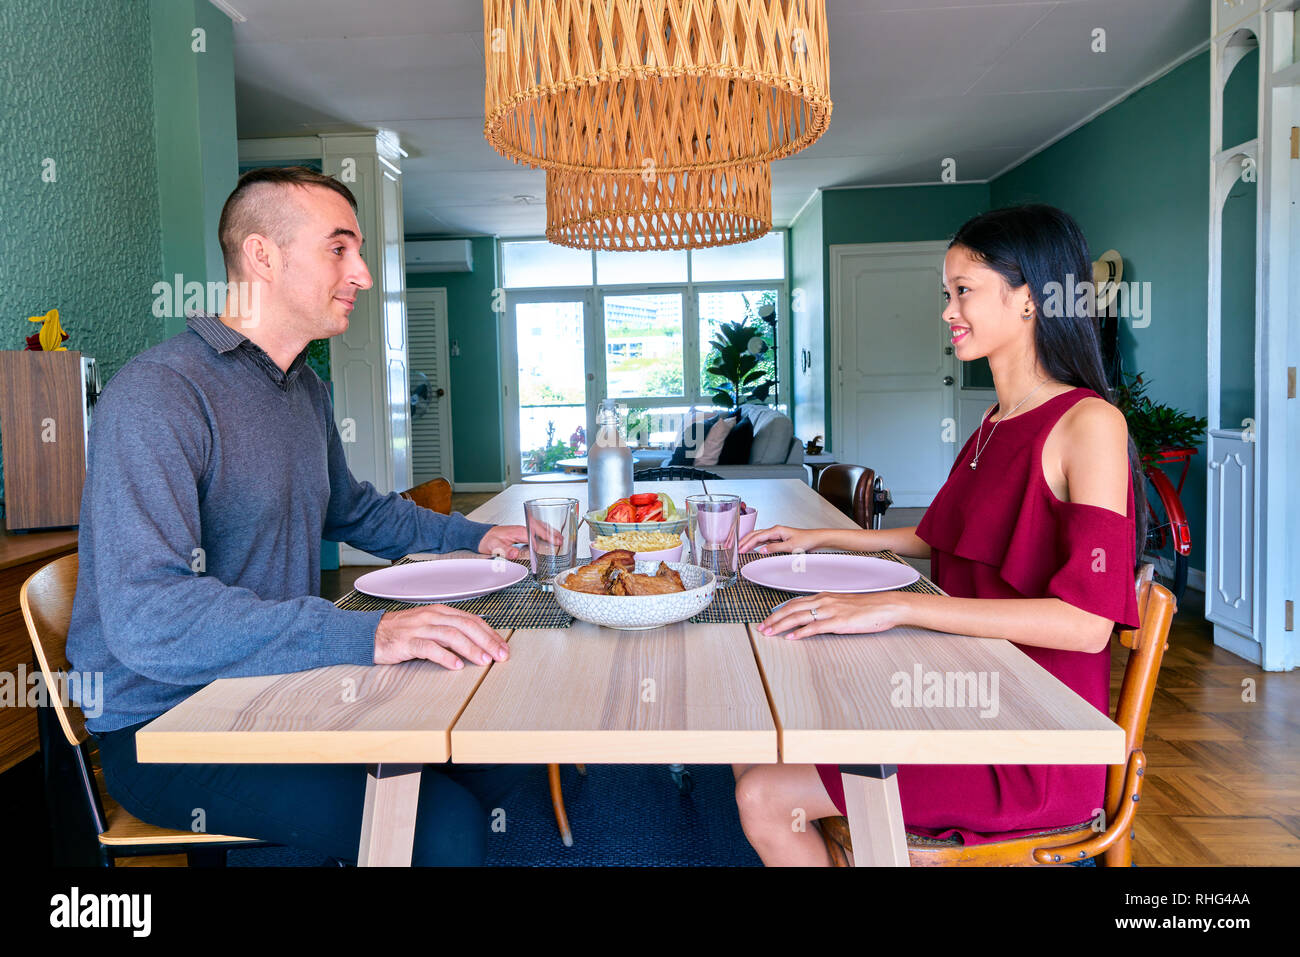 Lovely couple posing - staring each other and dating - Stock Image